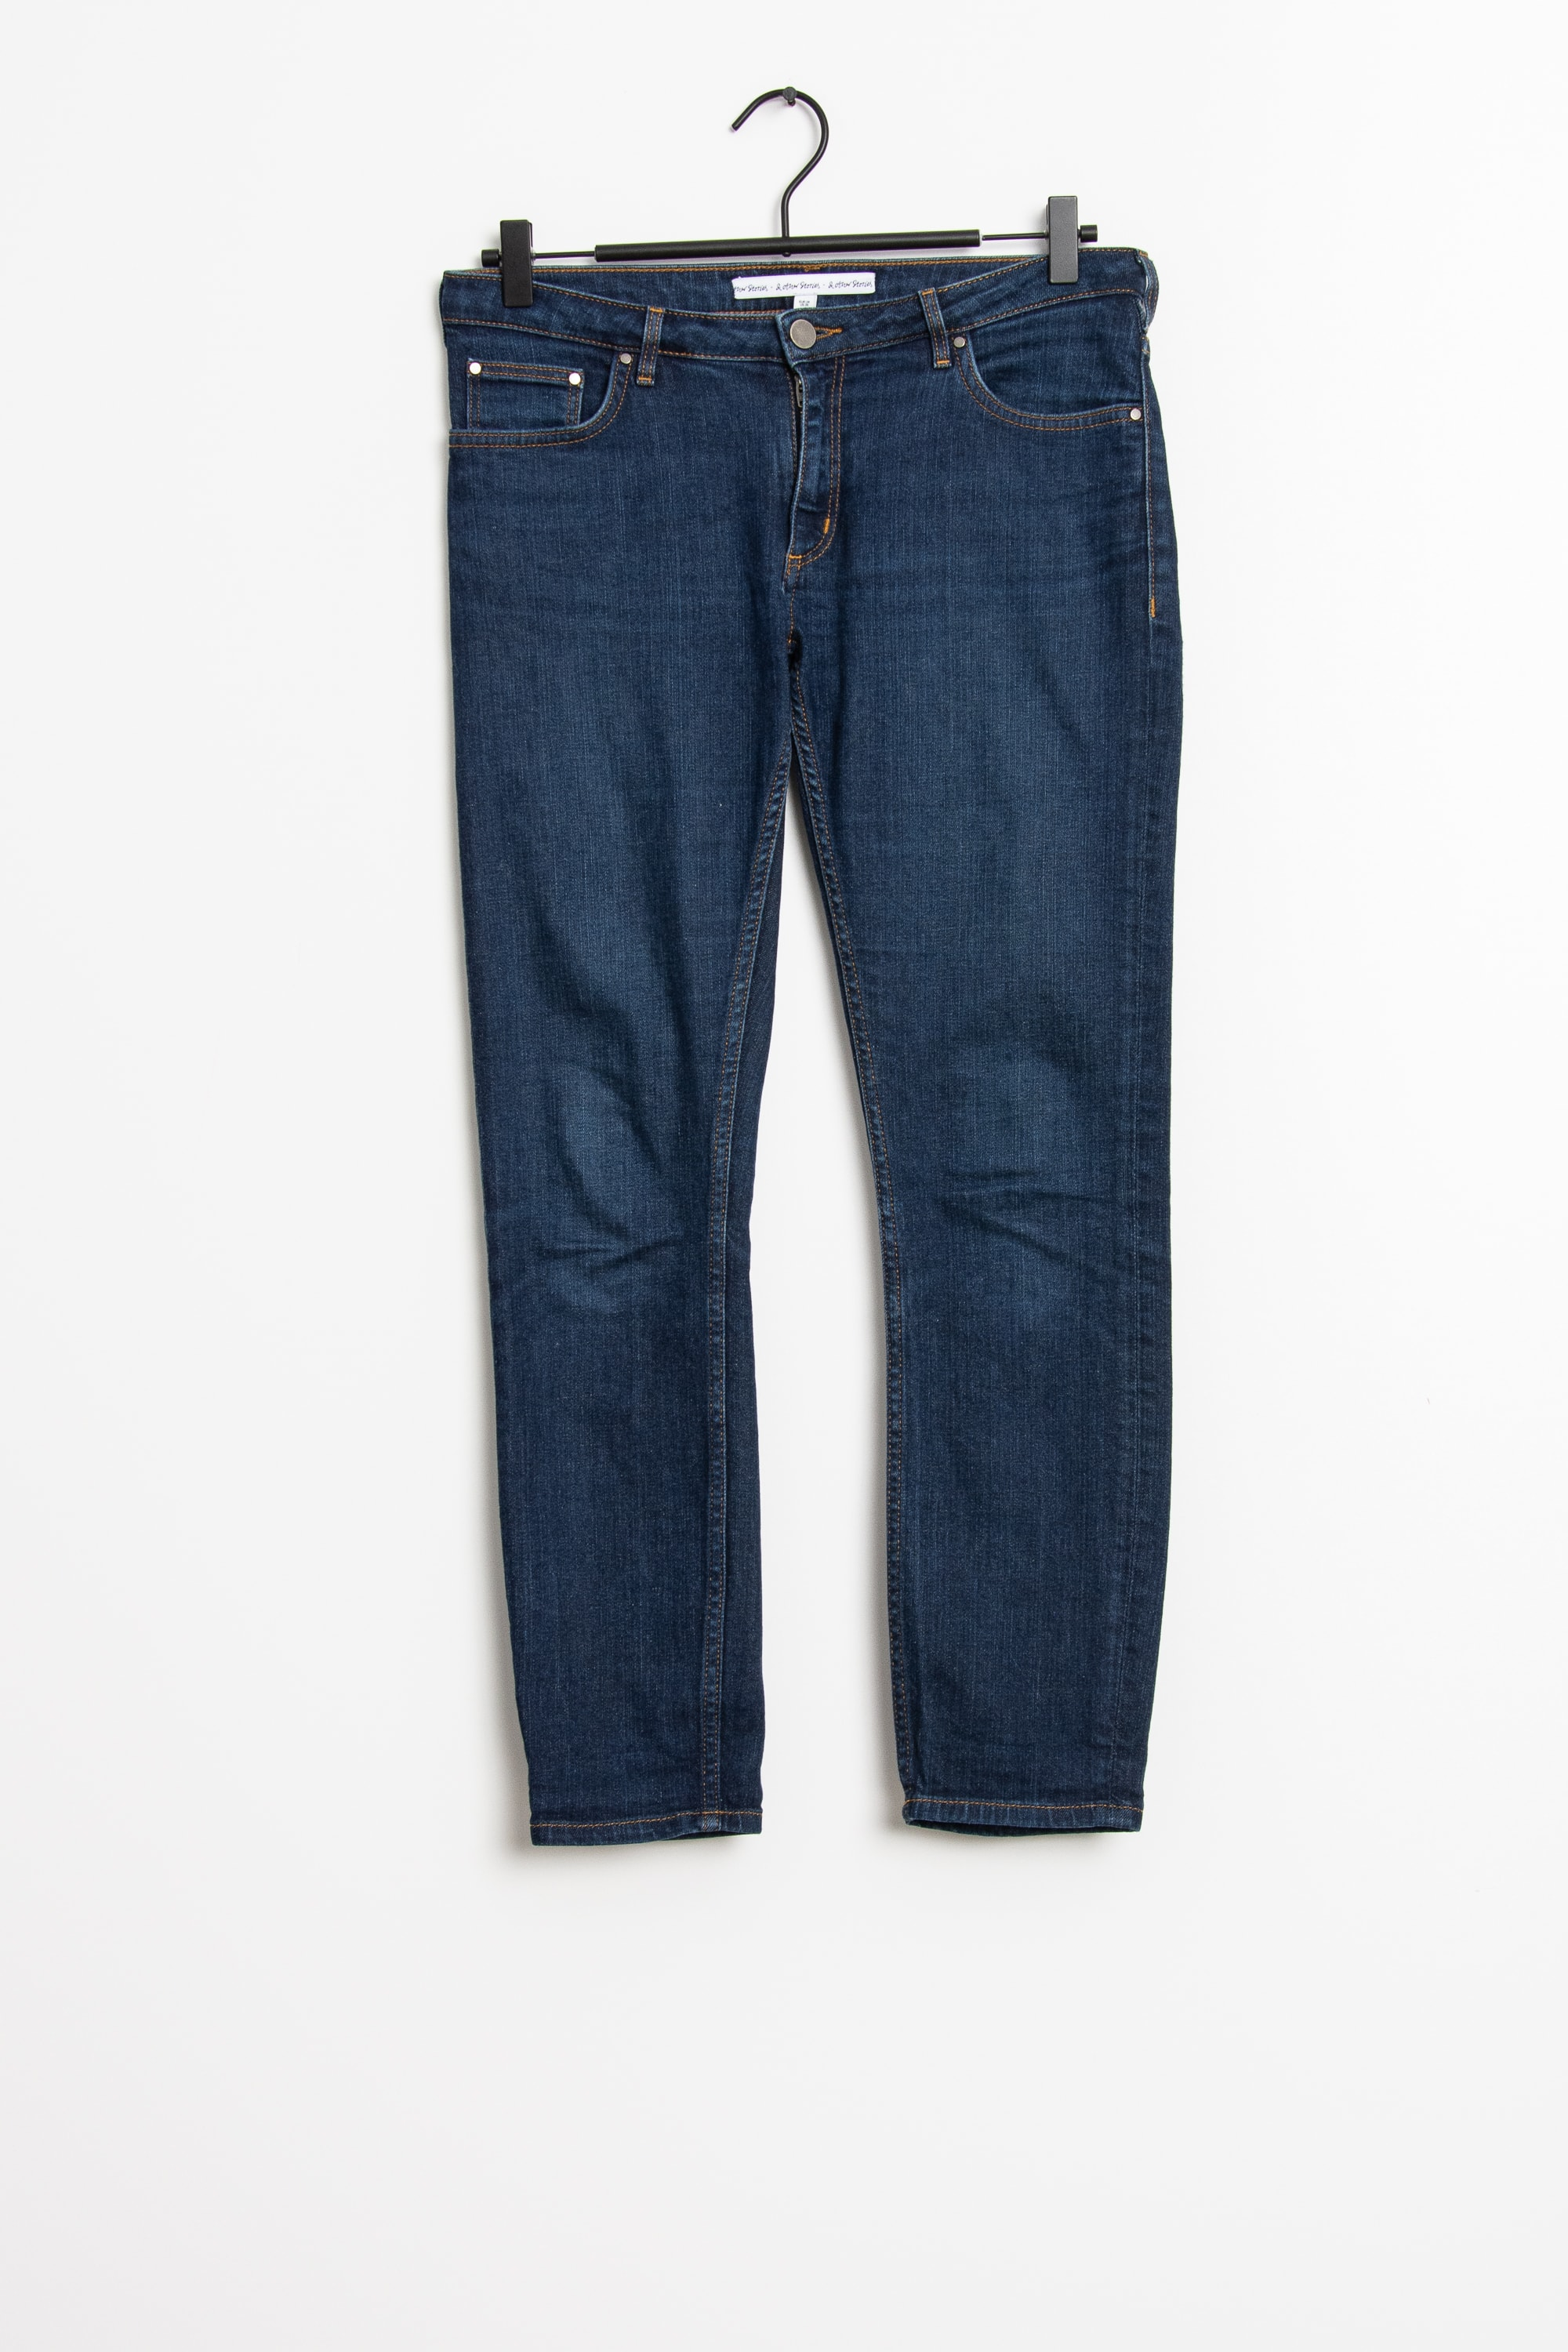 & other stories Jeans Blau Gr.36